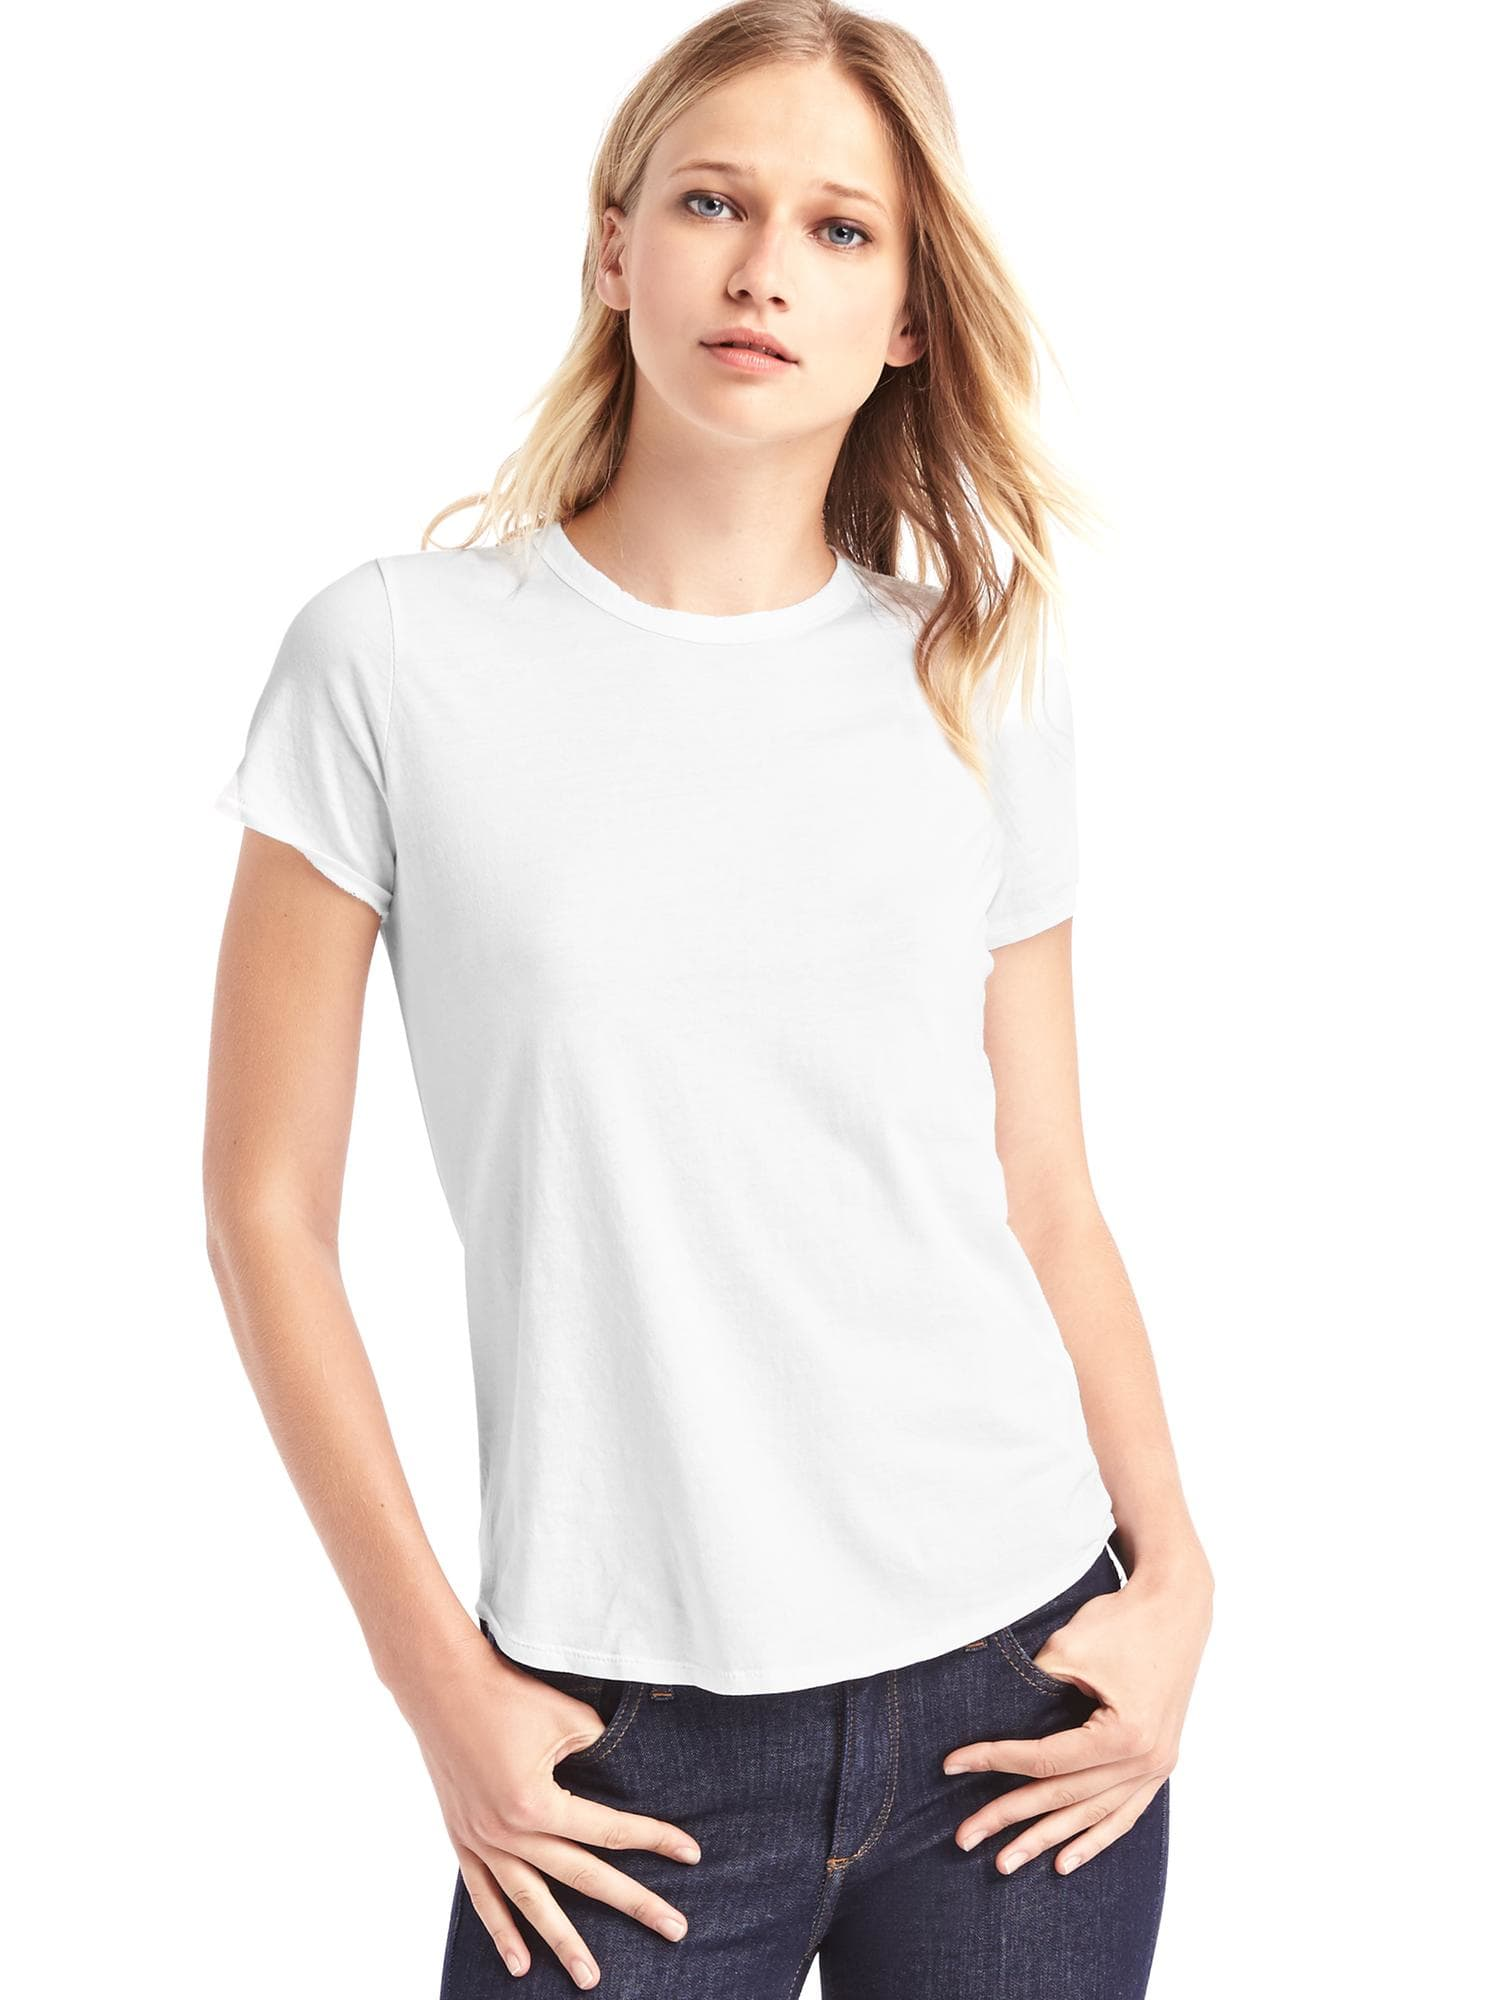 White t-shirt from the GAP